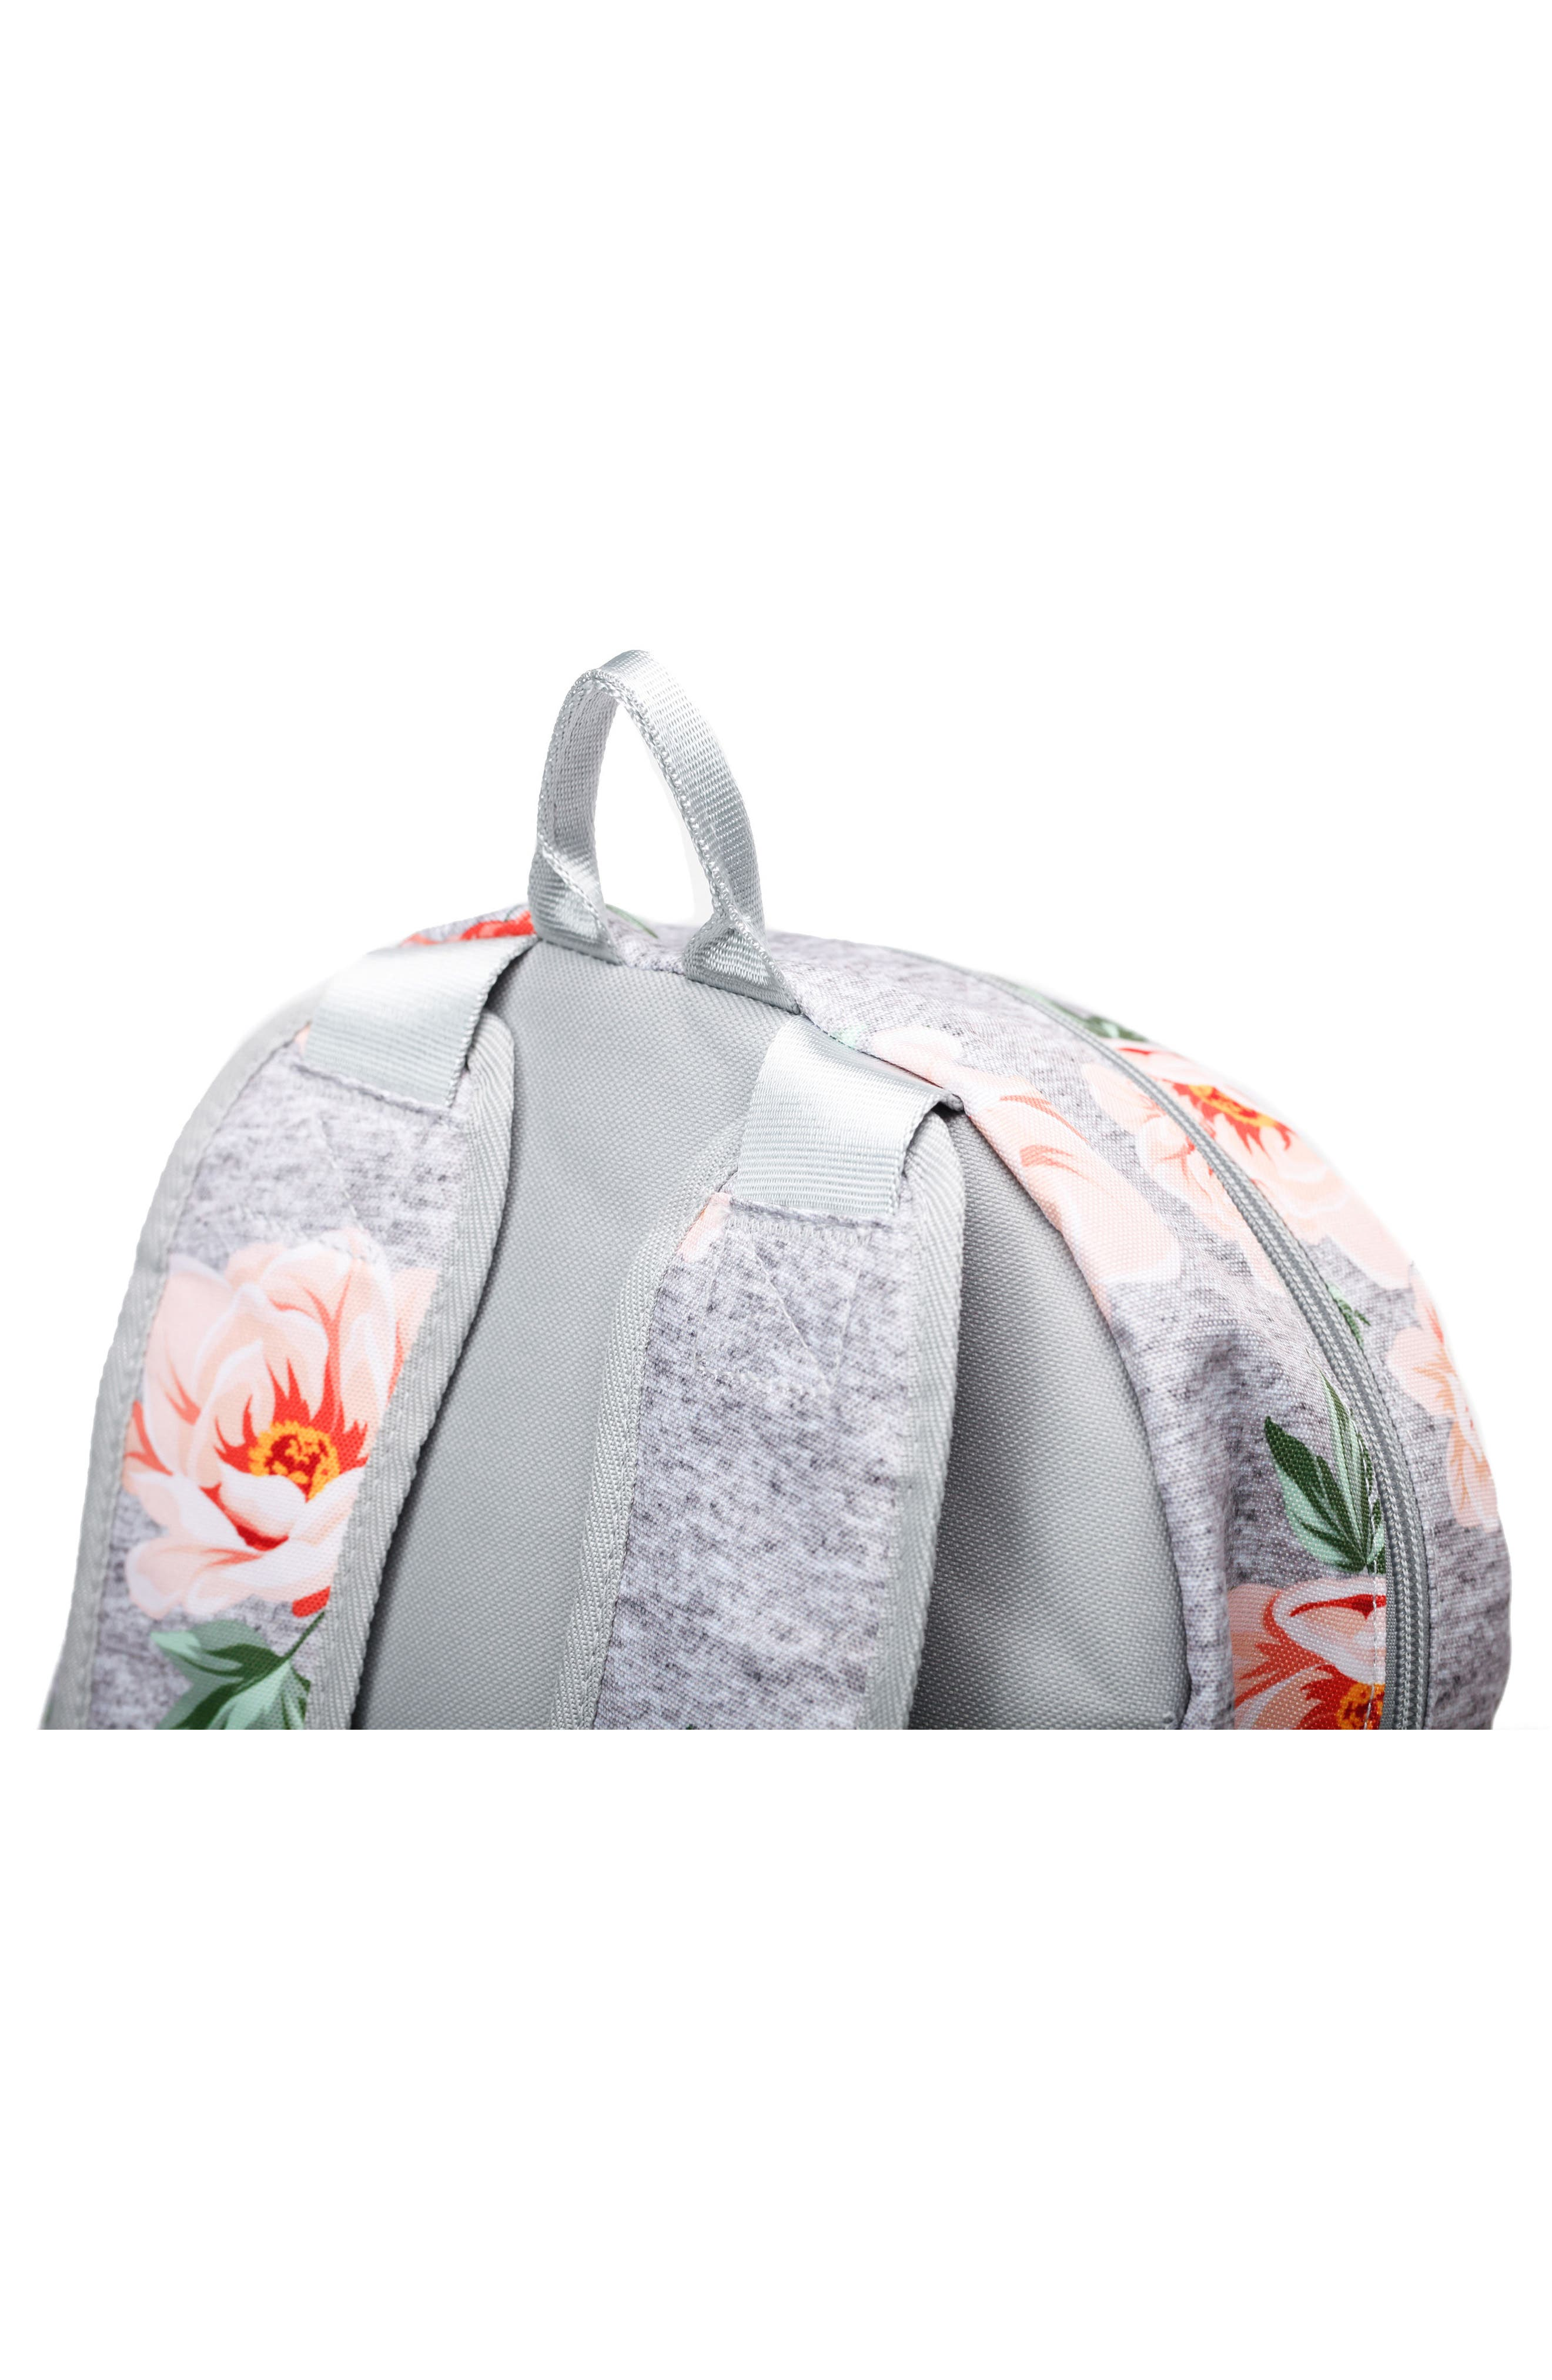 Ace Backpack,                             Alternate thumbnail 6, color,                             ROSE GRAY